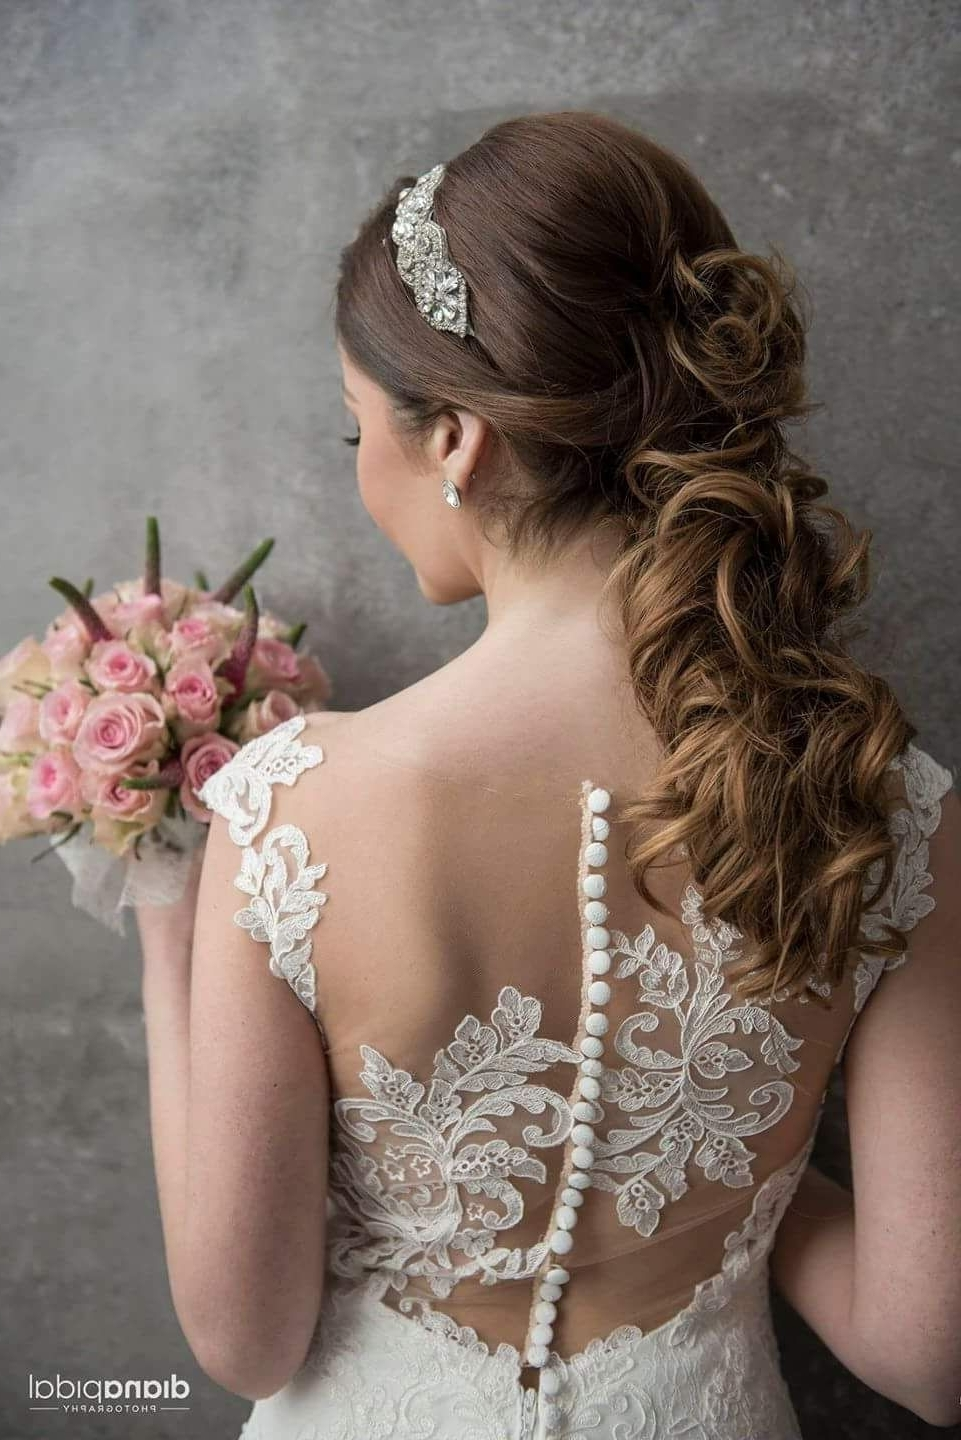 Most Popular Glamorous Wedding Hairstyles For Long Hair With Regard To 60 Glamorous Wedding Hairstyles For Long Hair To Look Like A Goddess (View 15 of 15)